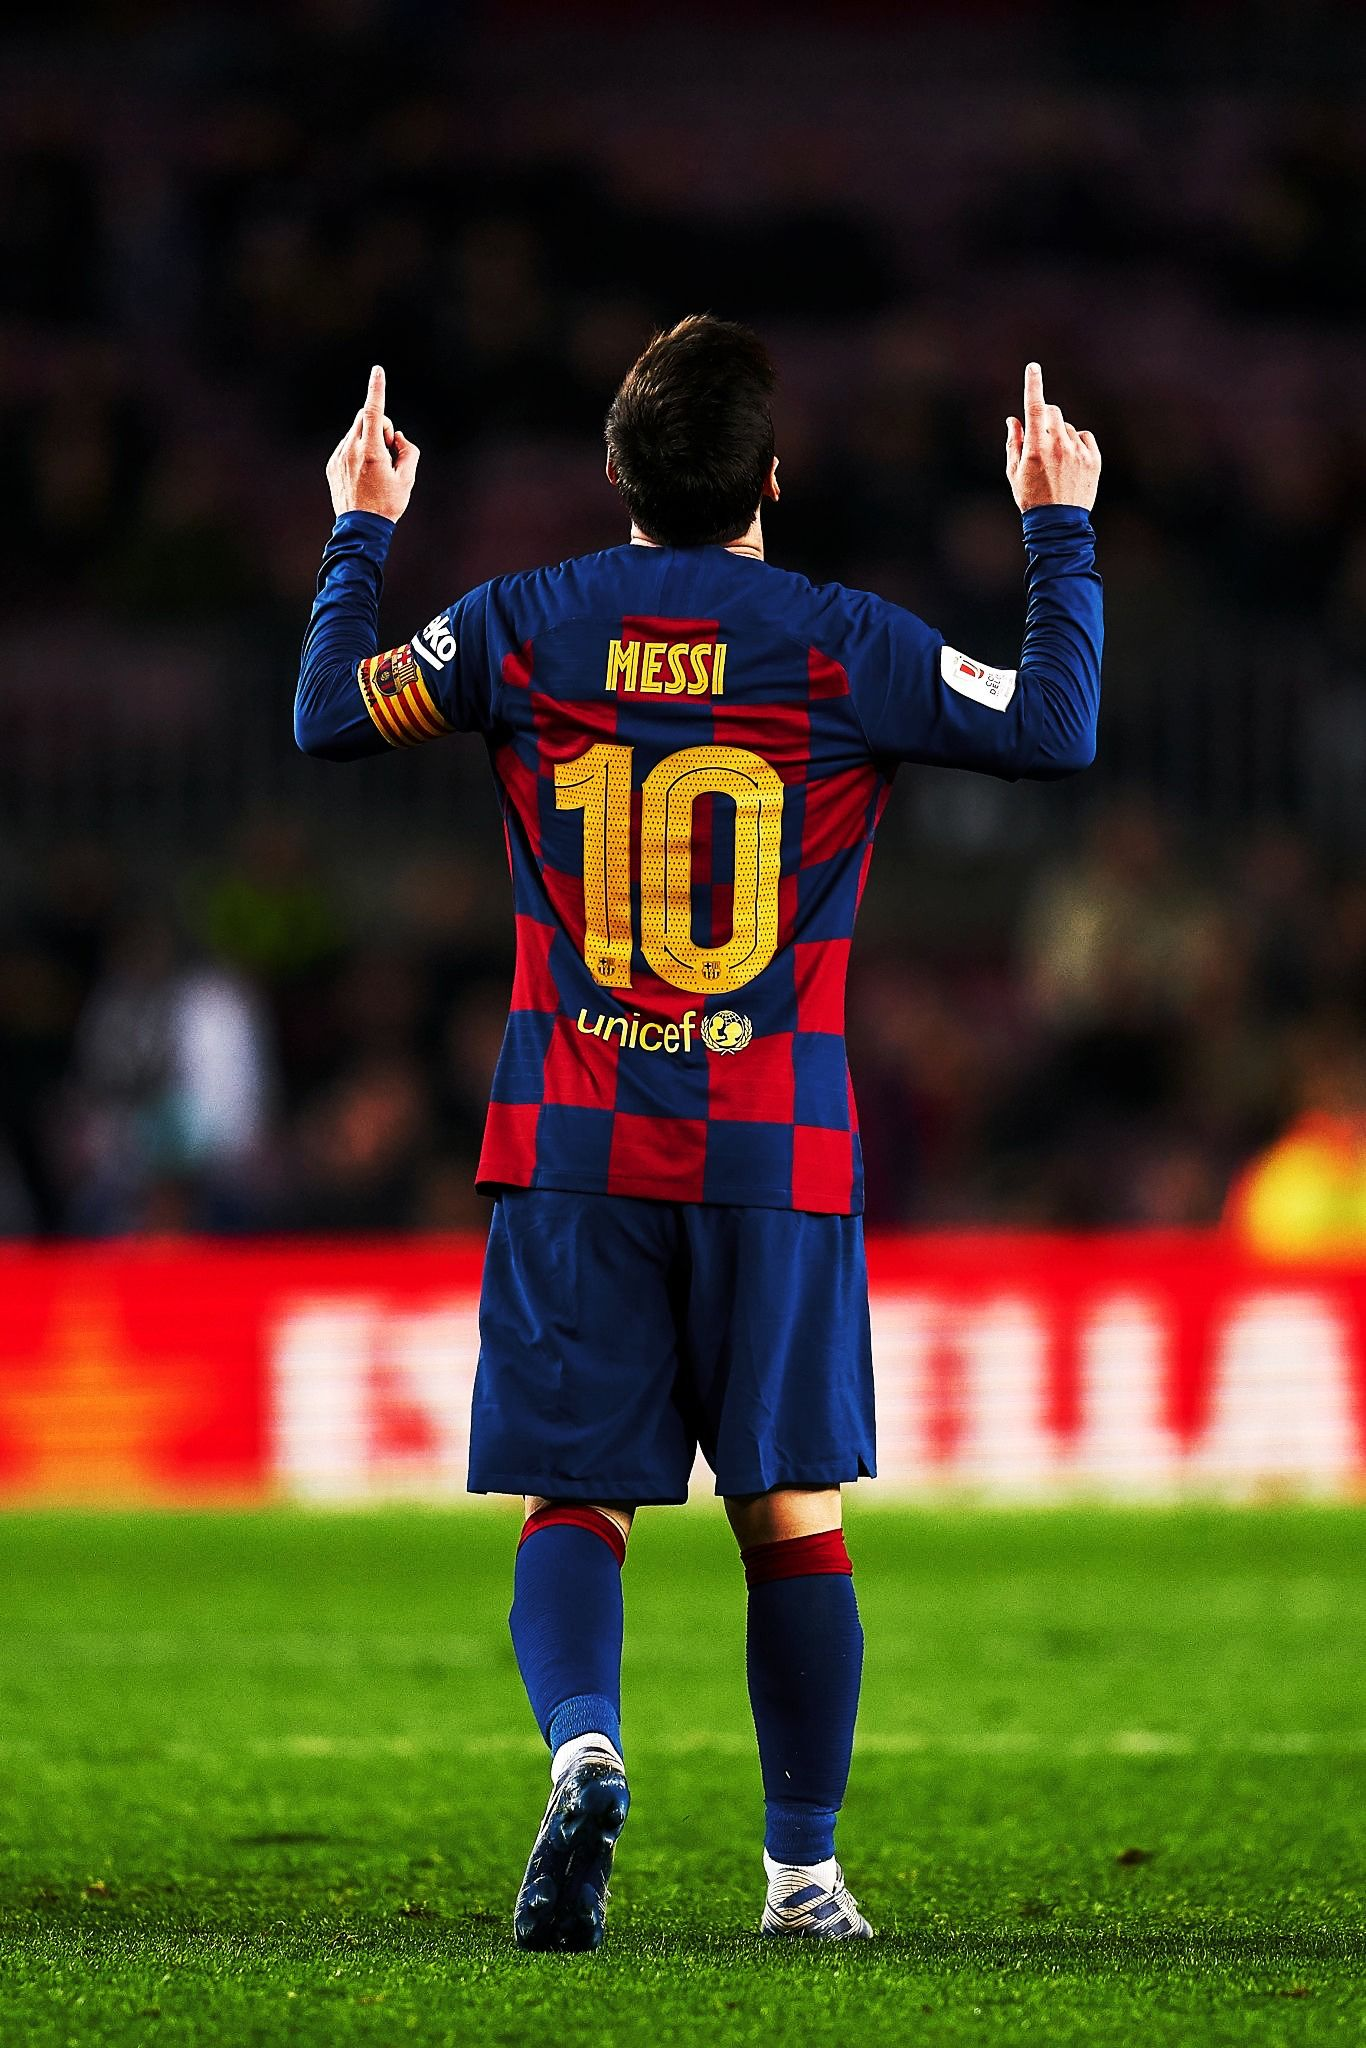 Pin By Hanna On Futbol In 2020 Lionel Messi Messi Messi And Ronaldo